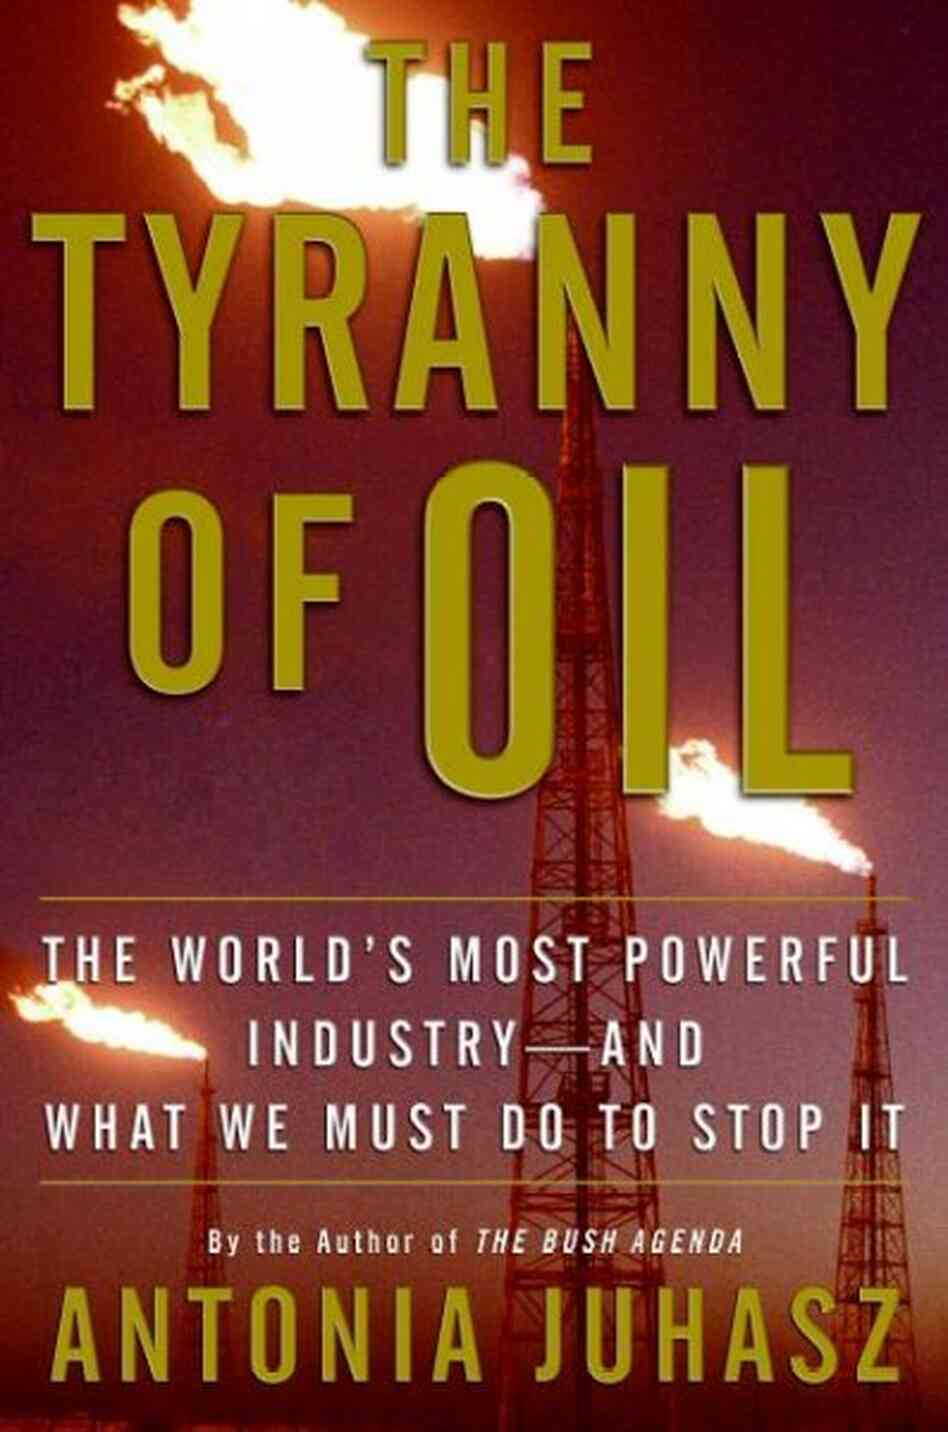 The Tyranny of Oil